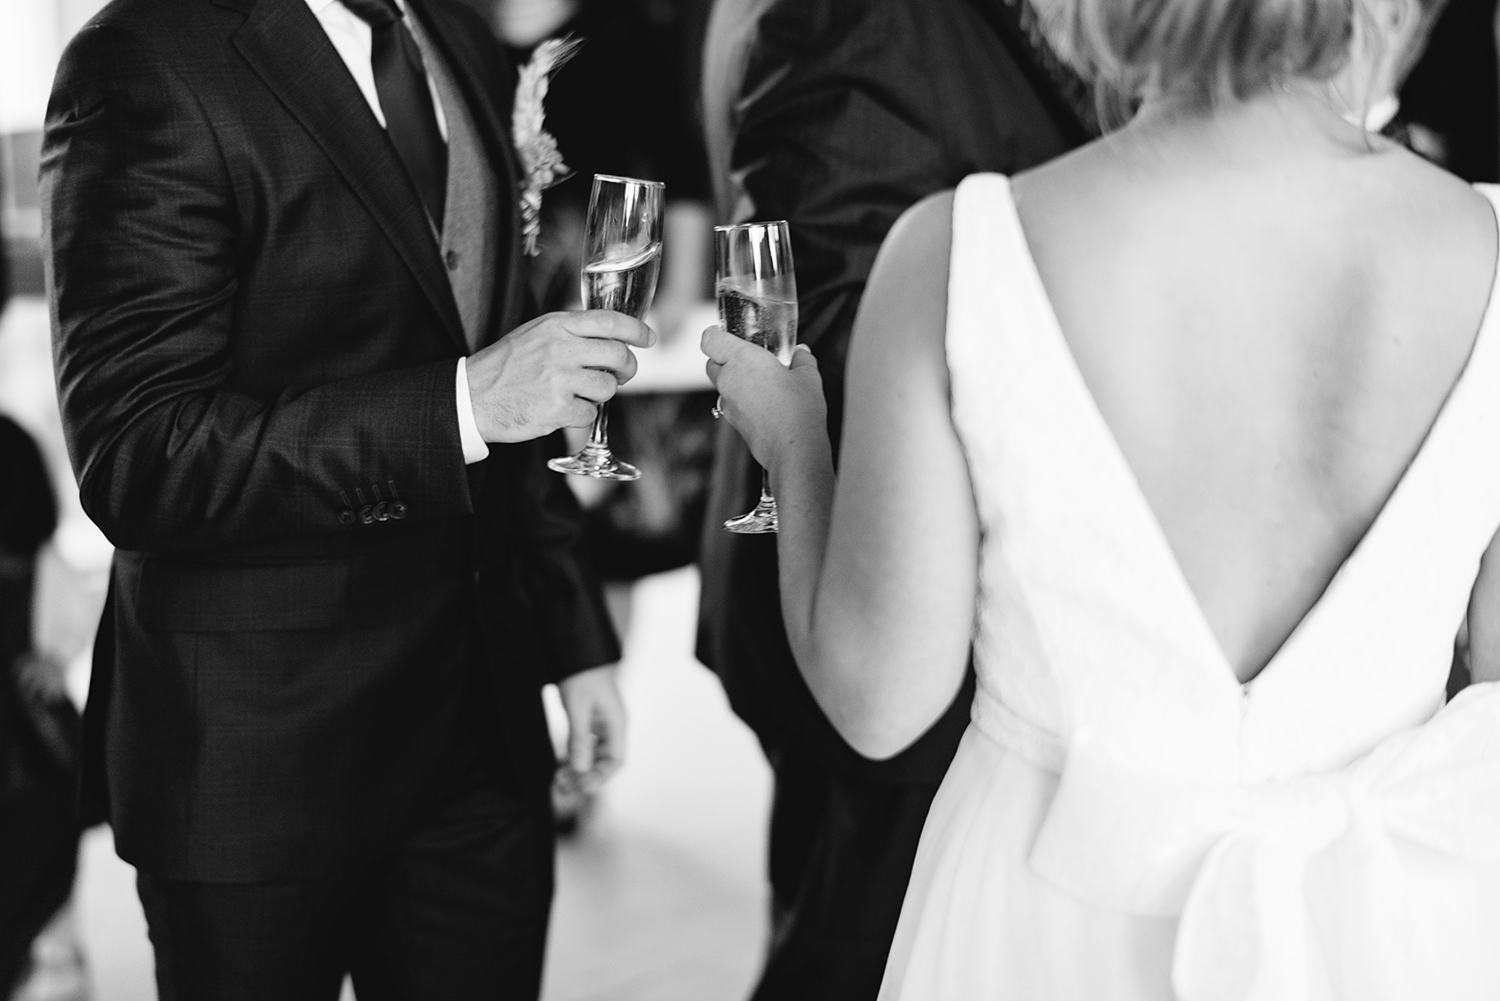 Prince-Edward-County-Wedding-Photographer-Drake-Hotel-Elopement-Venue-Cheers-Champagne.jpg